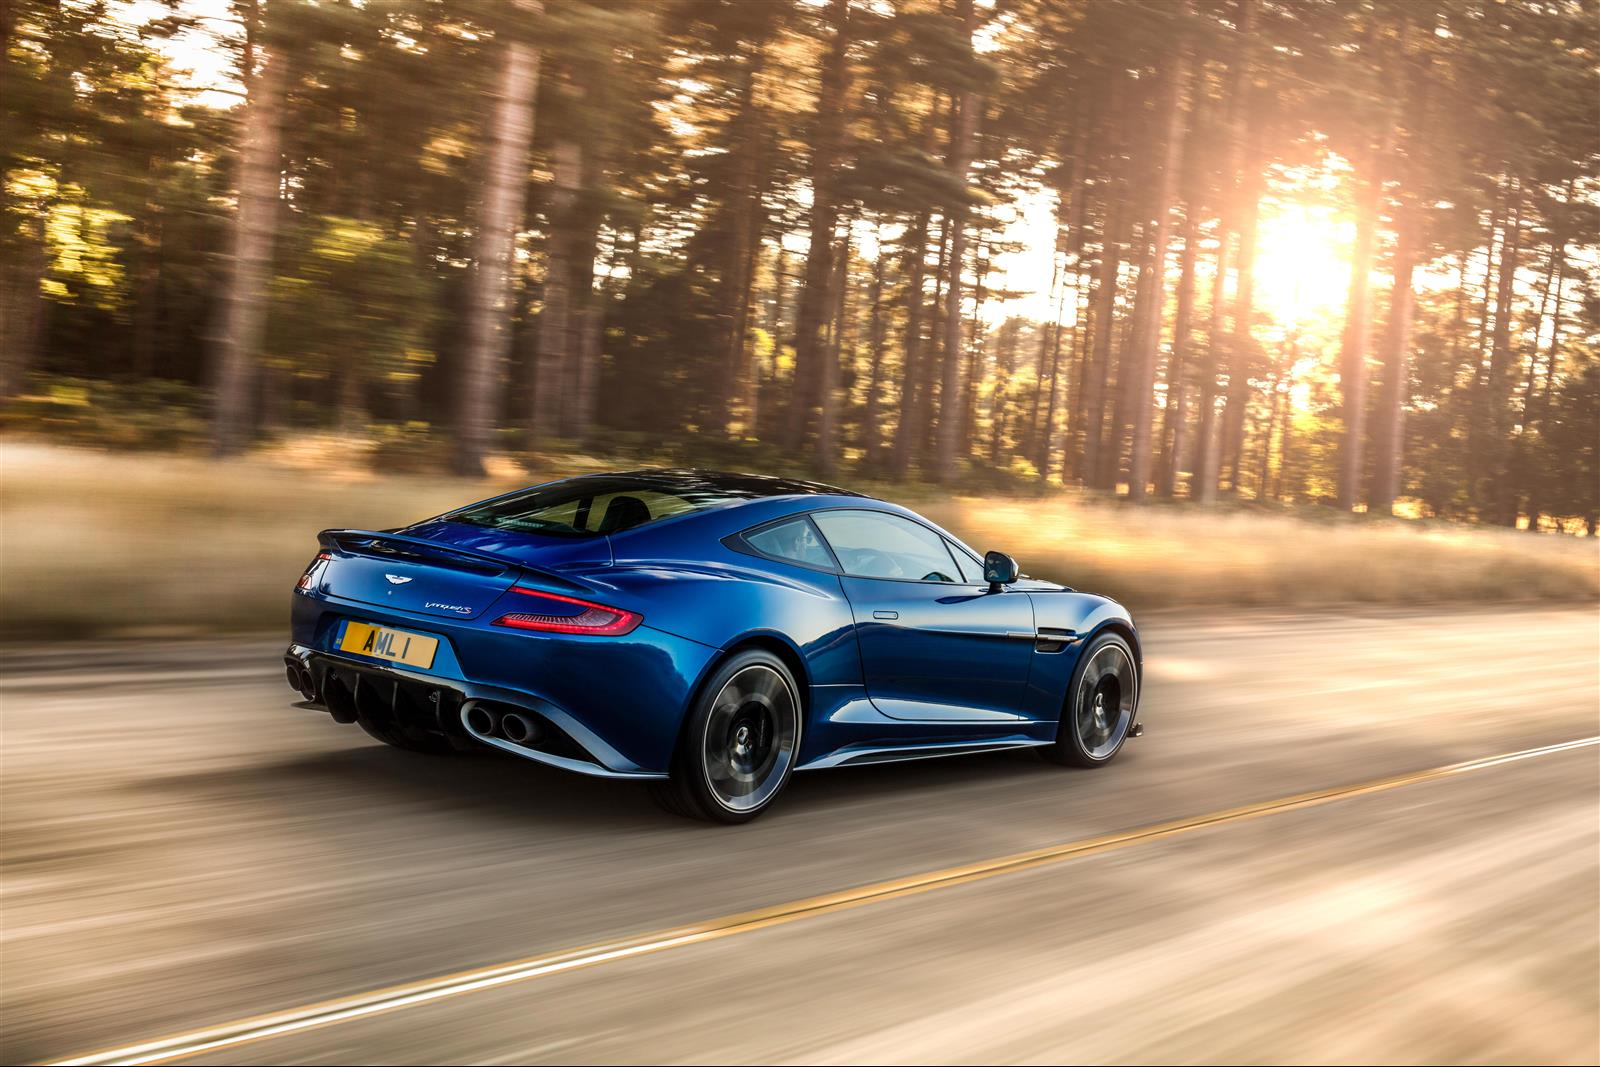 the new grand tourer from aston martin: the vanquish s - lxry